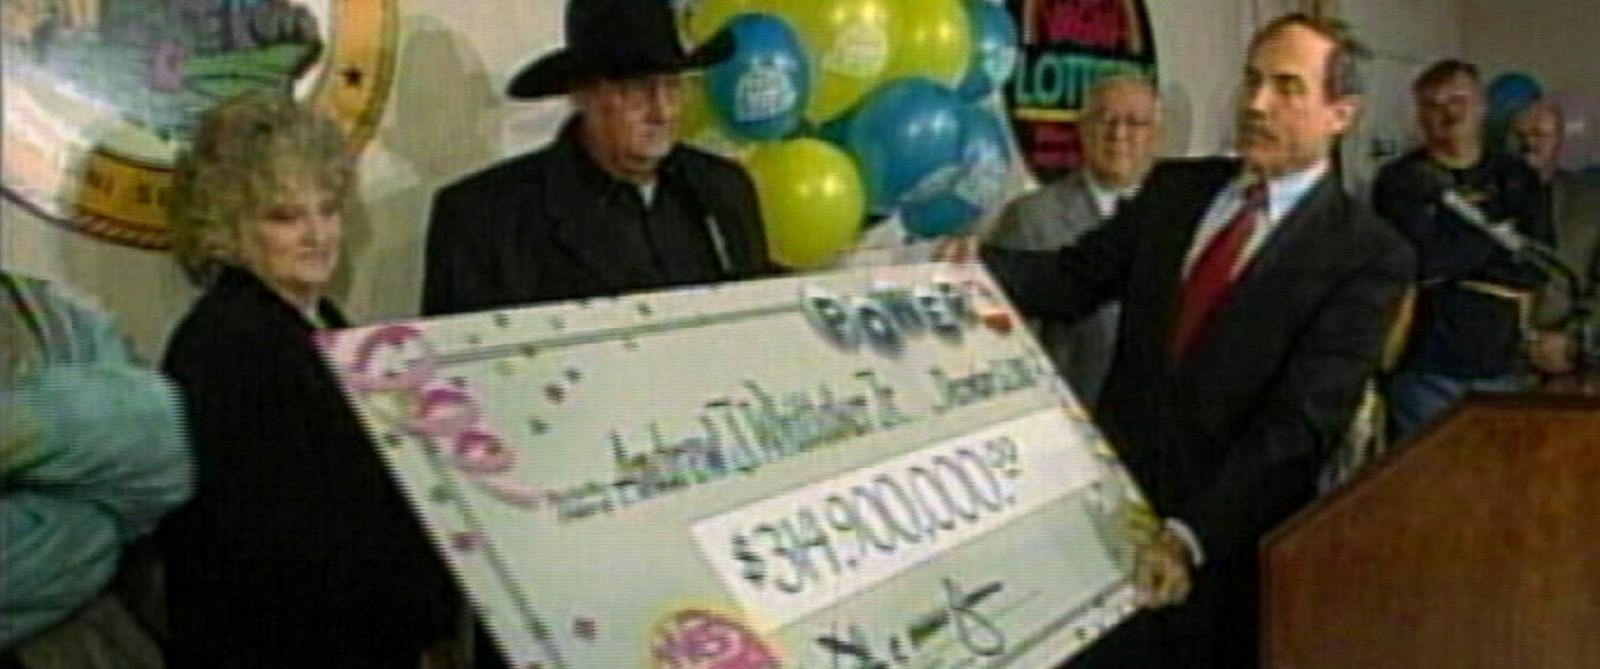 PHOTO: Powerball lottery winner Andrew Jack Whittaker, who is holding a check for $314.9 million, and his wife Jewell of Scott Depot, W. Va., shown in this undated photo.